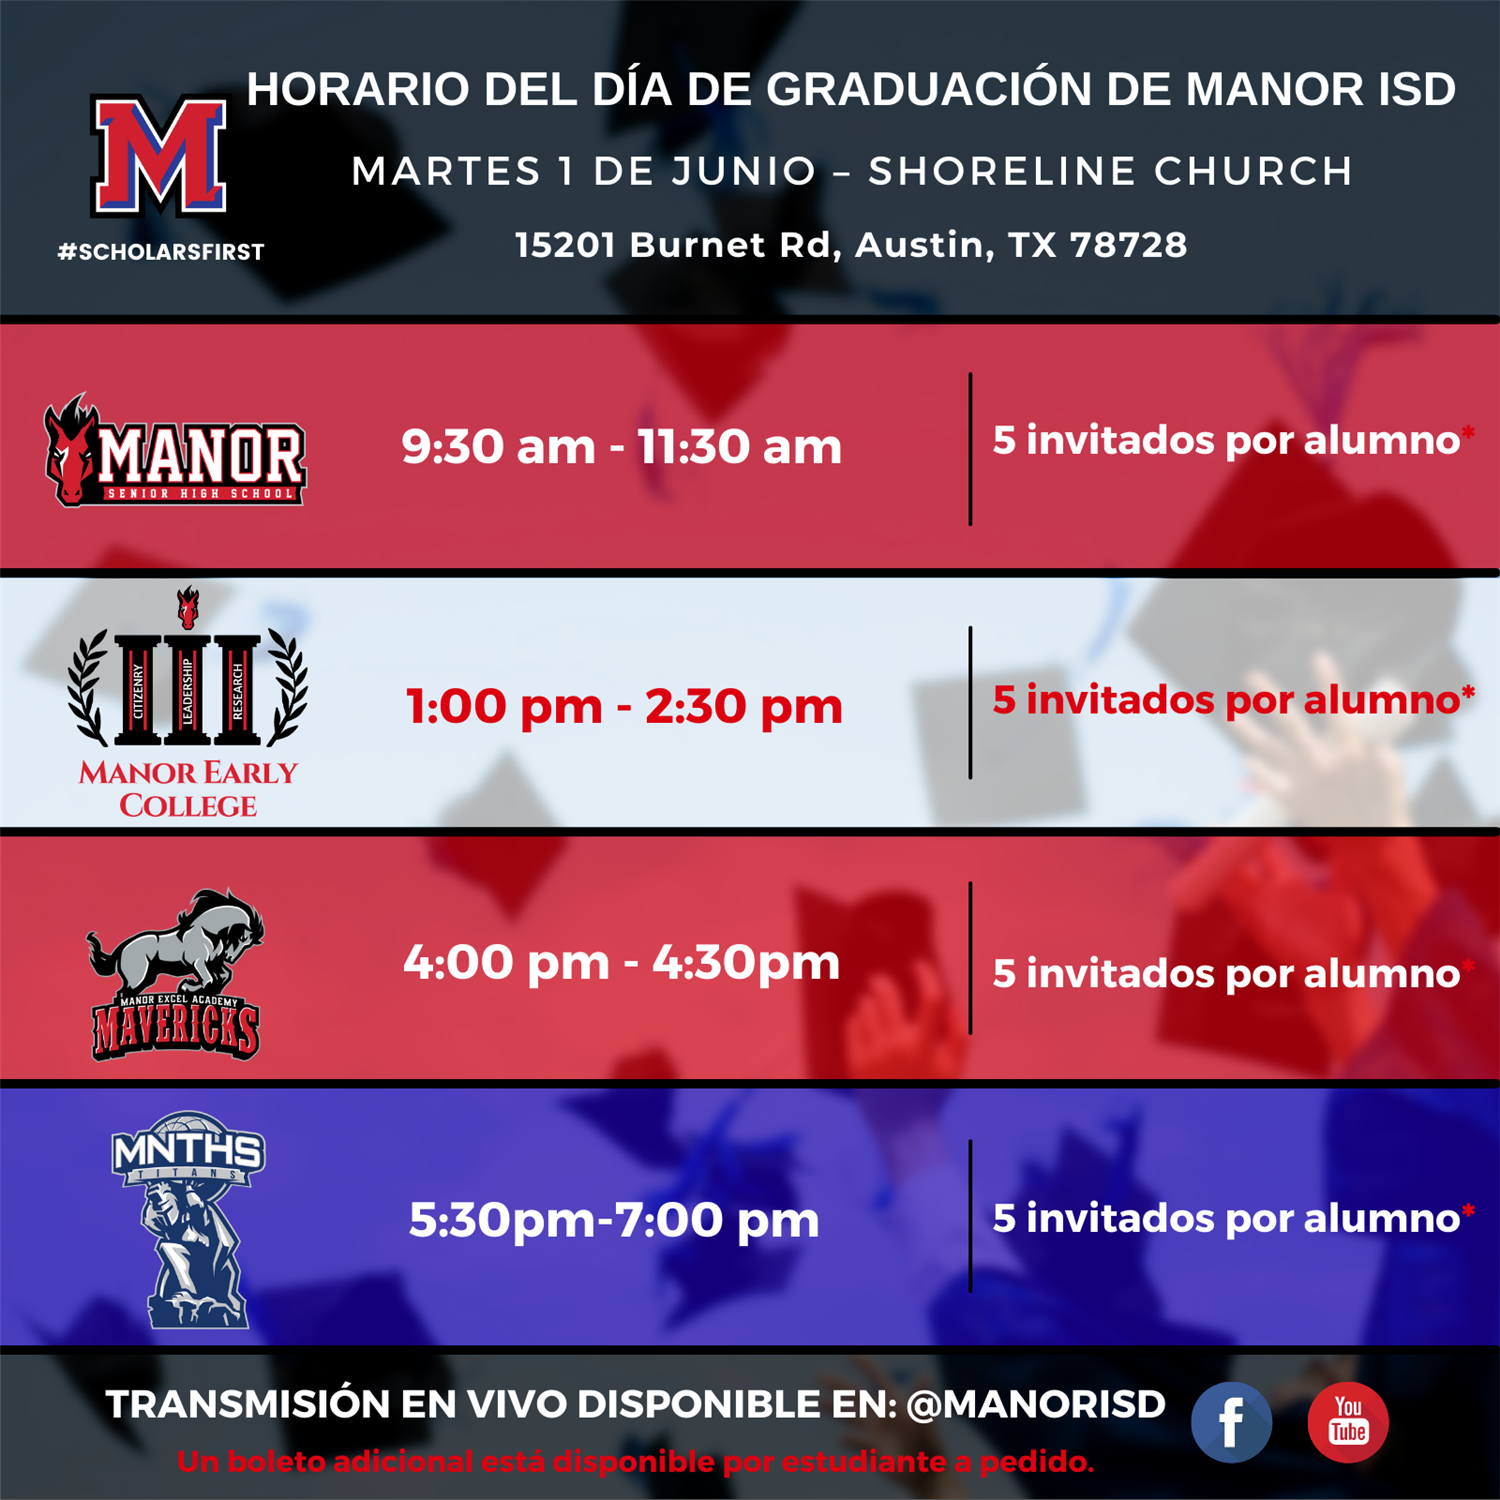 Manor ISD Graduation Day Schedule 2021 Spanish 1.png